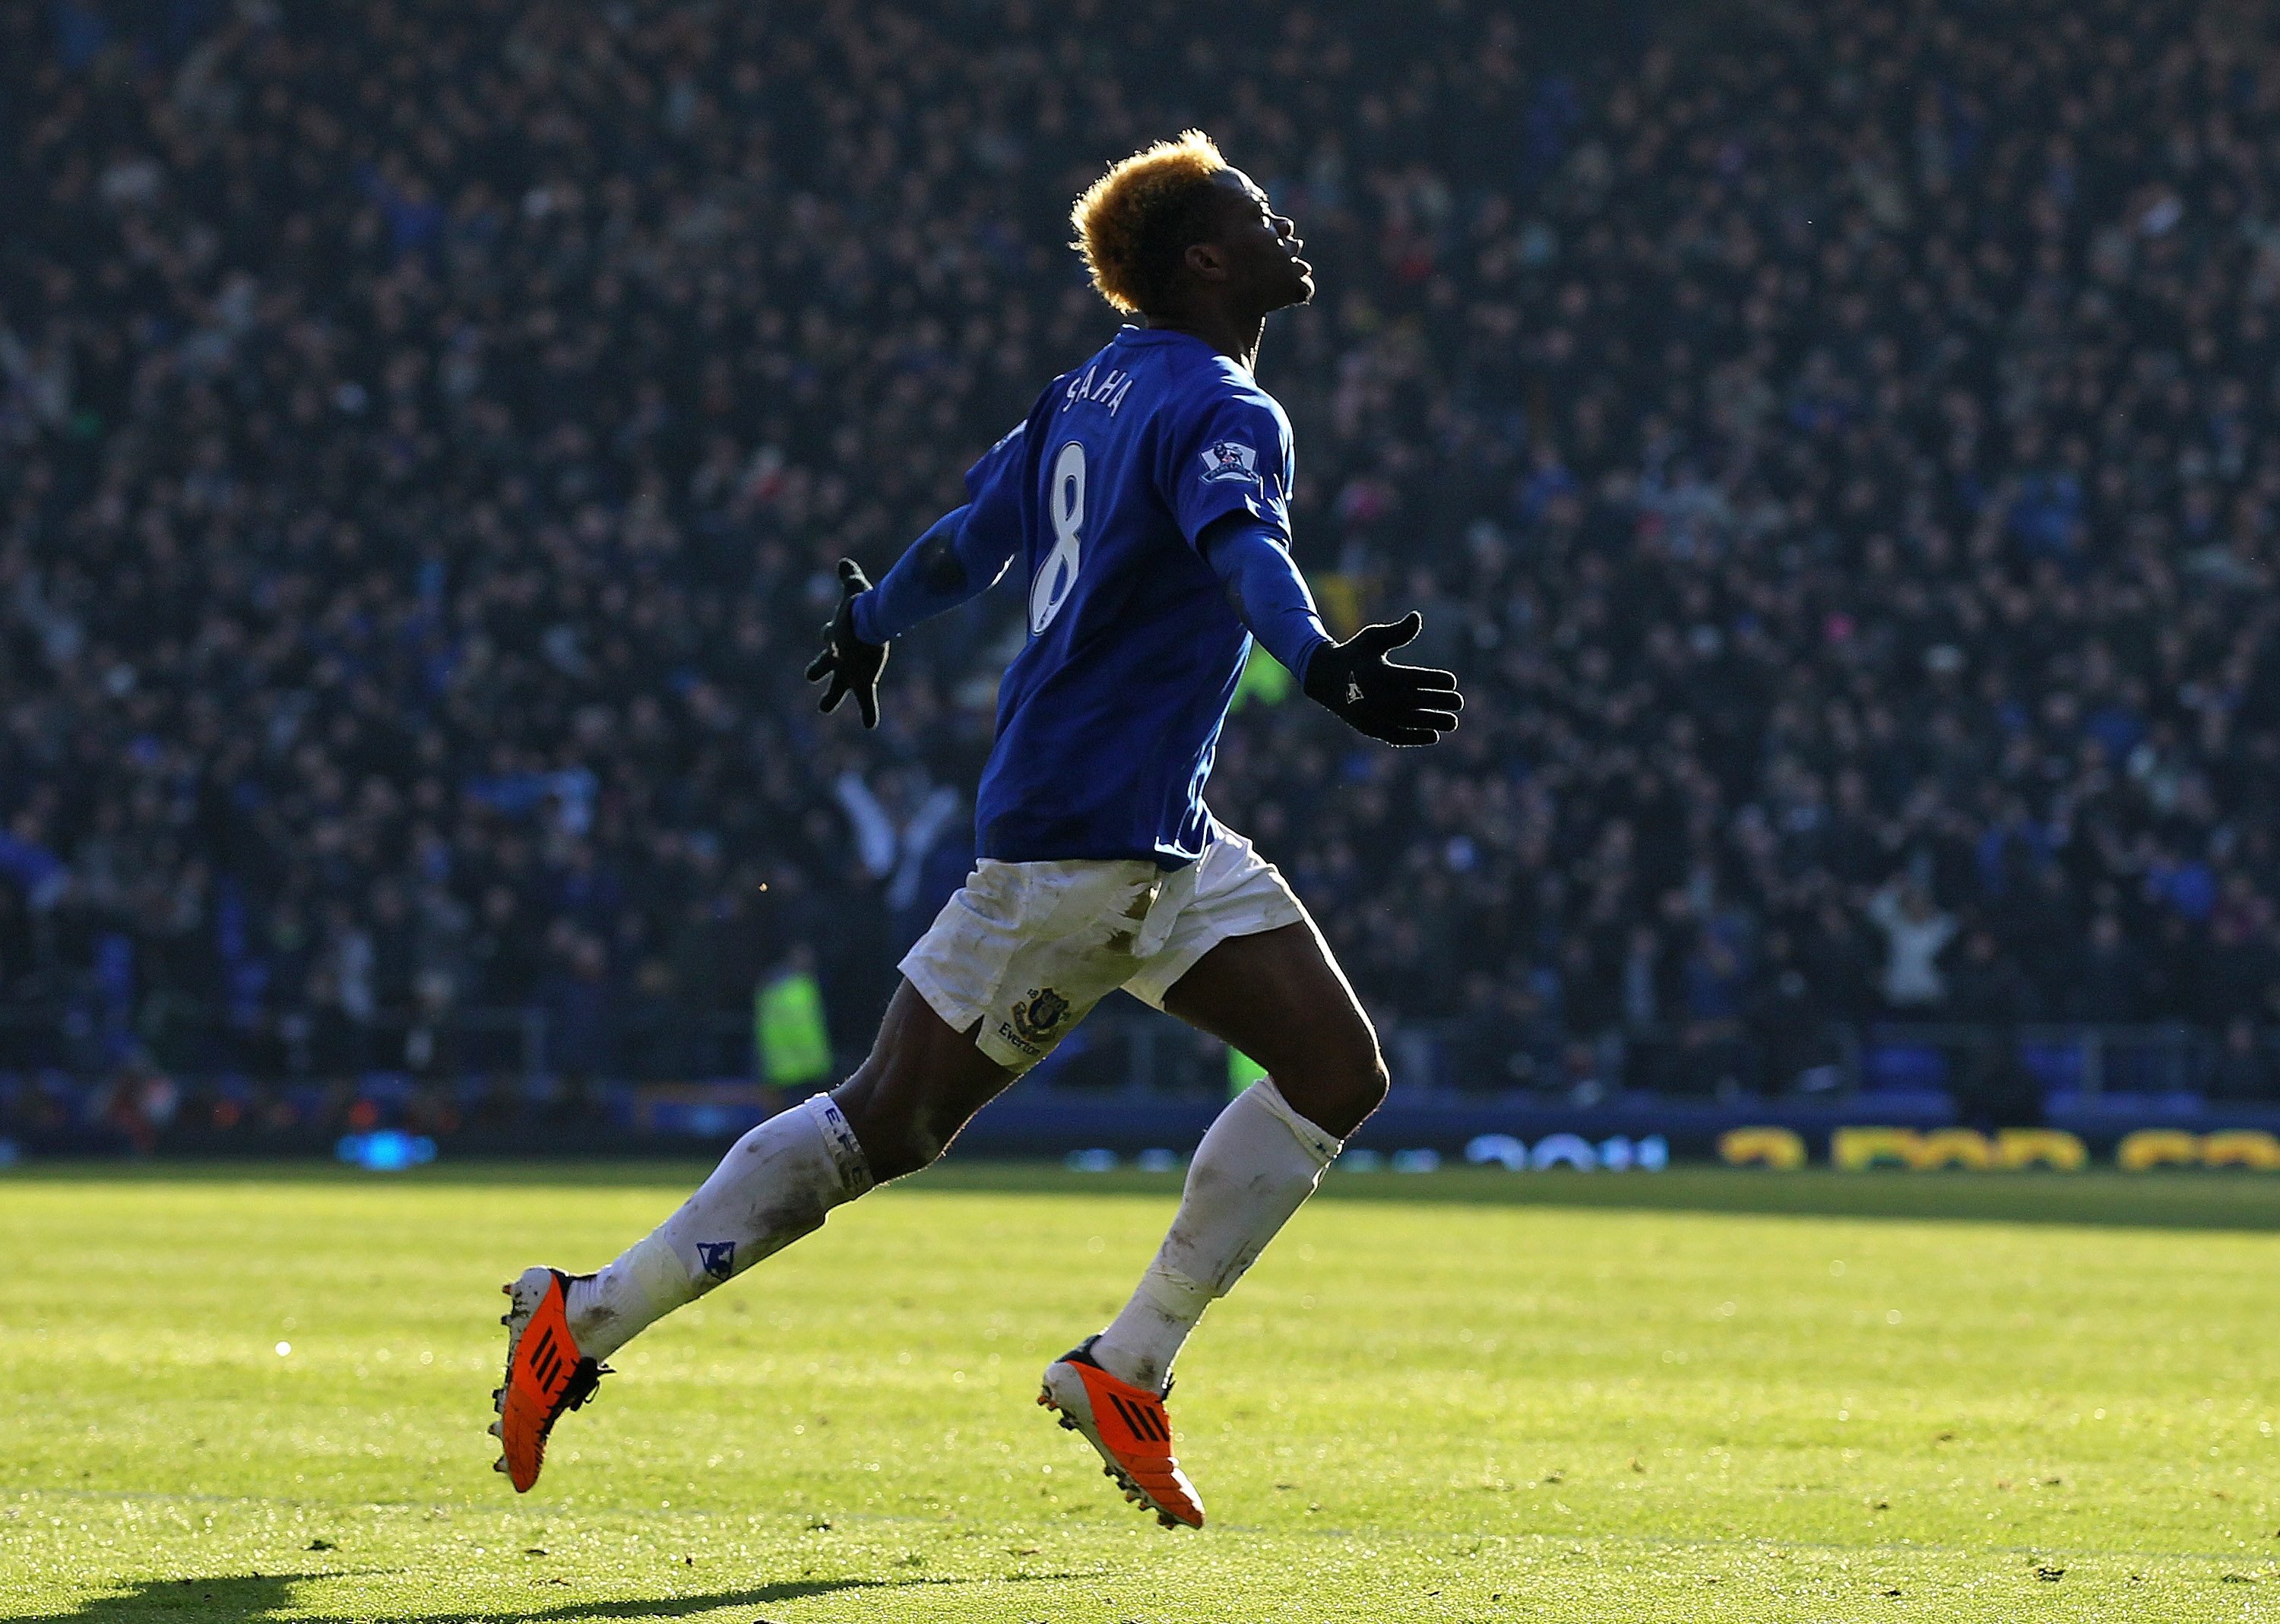 LIVERPOOL, ENGLAND - JANUARY 29:  Louis Saha of Everton celebrates scoring the opening goal during the FA Cup sponsored by E.On Fourth Round match between Everton and Chelsea at Goodison Park on January 29, 2011 in Liverpool, England.  (Photo by Alex Live